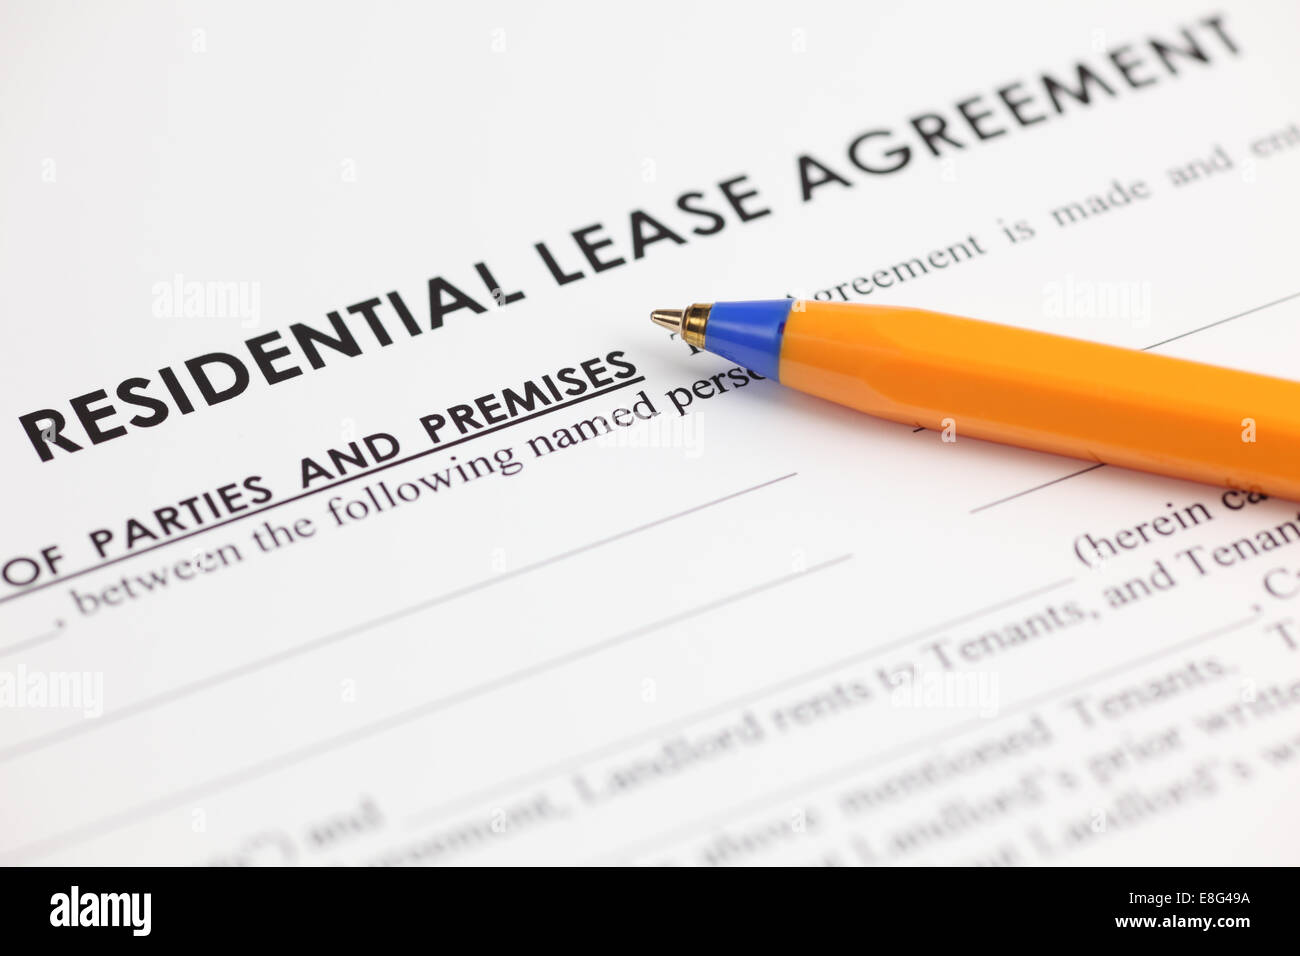 Lease agreement and ballpoint pen. Close-up. - Stock Image